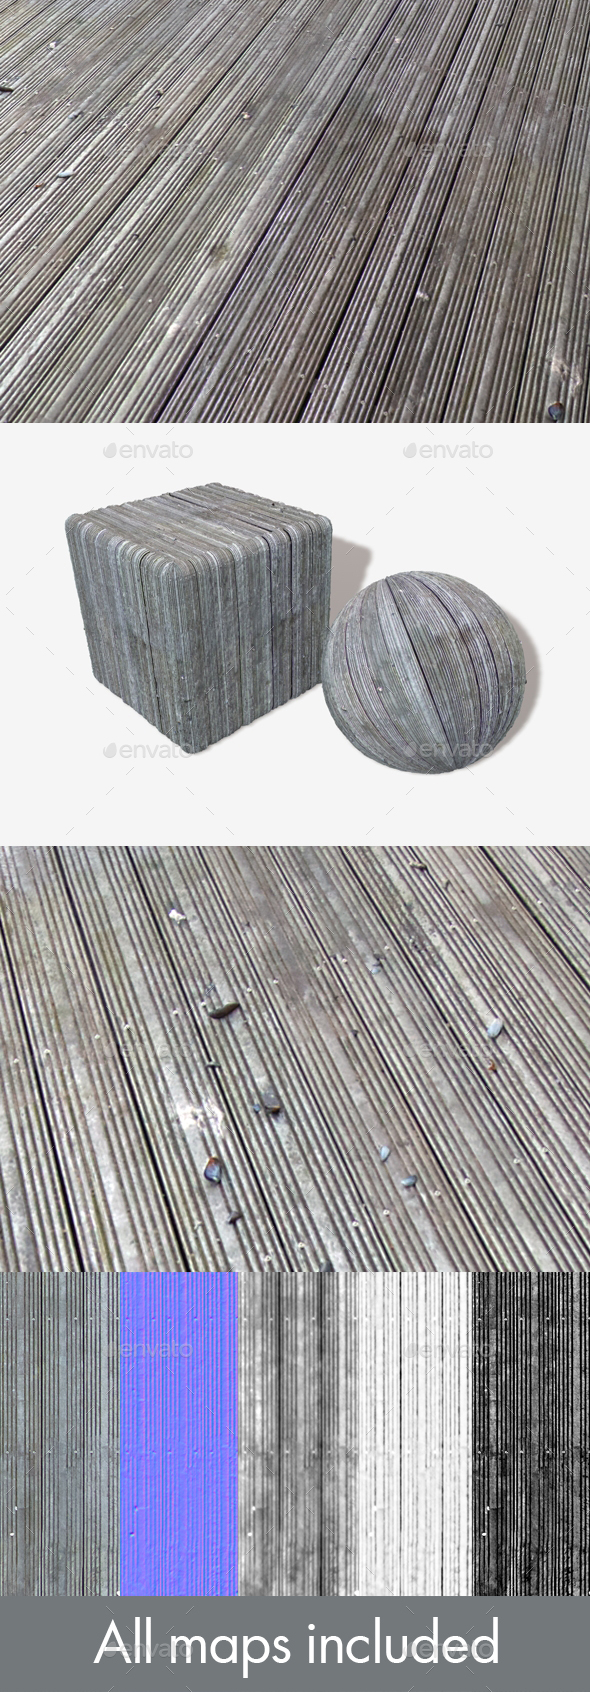 Oceanside Wooden Decking Seamless Texture - 3DOcean Item for Sale